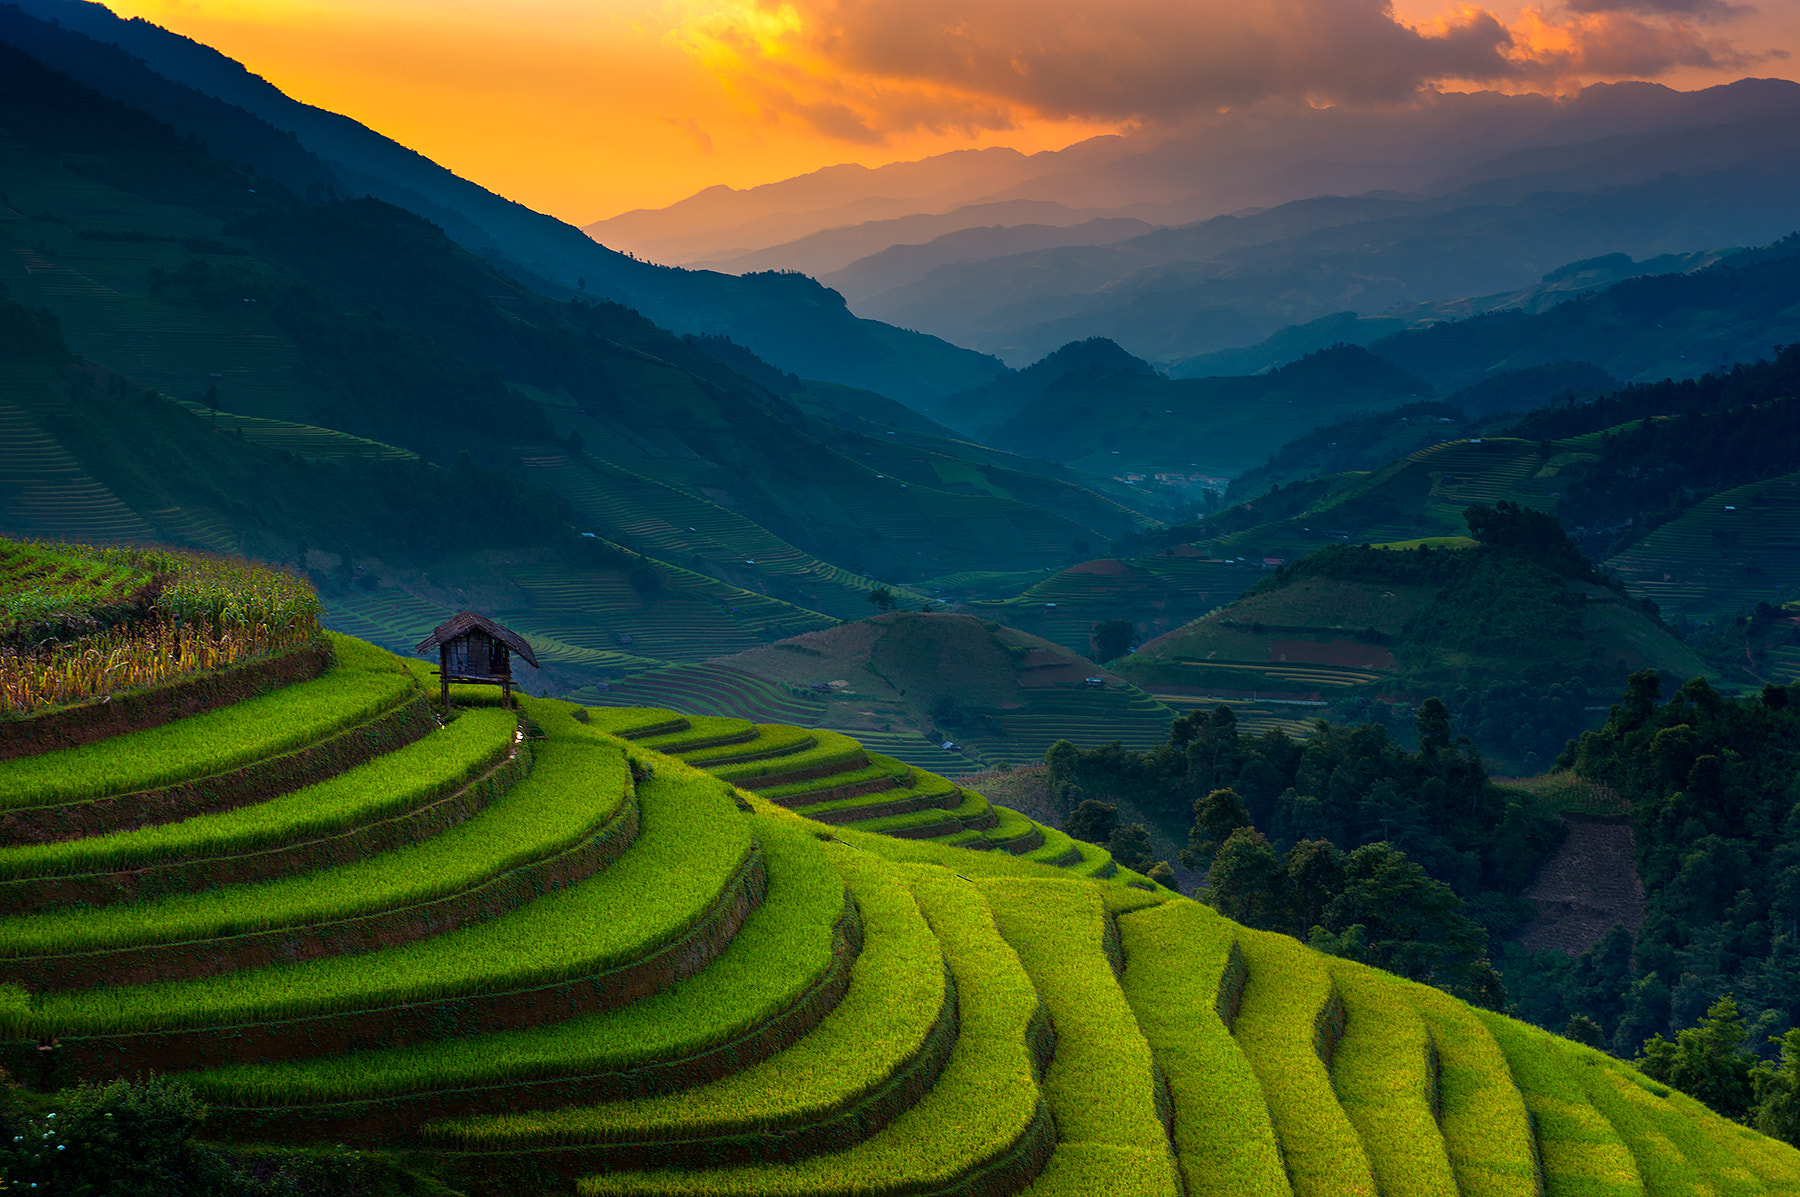 Photograph Sunset @ Mu Cang Chai by Ratnakorn Piyasirisorost on 500px